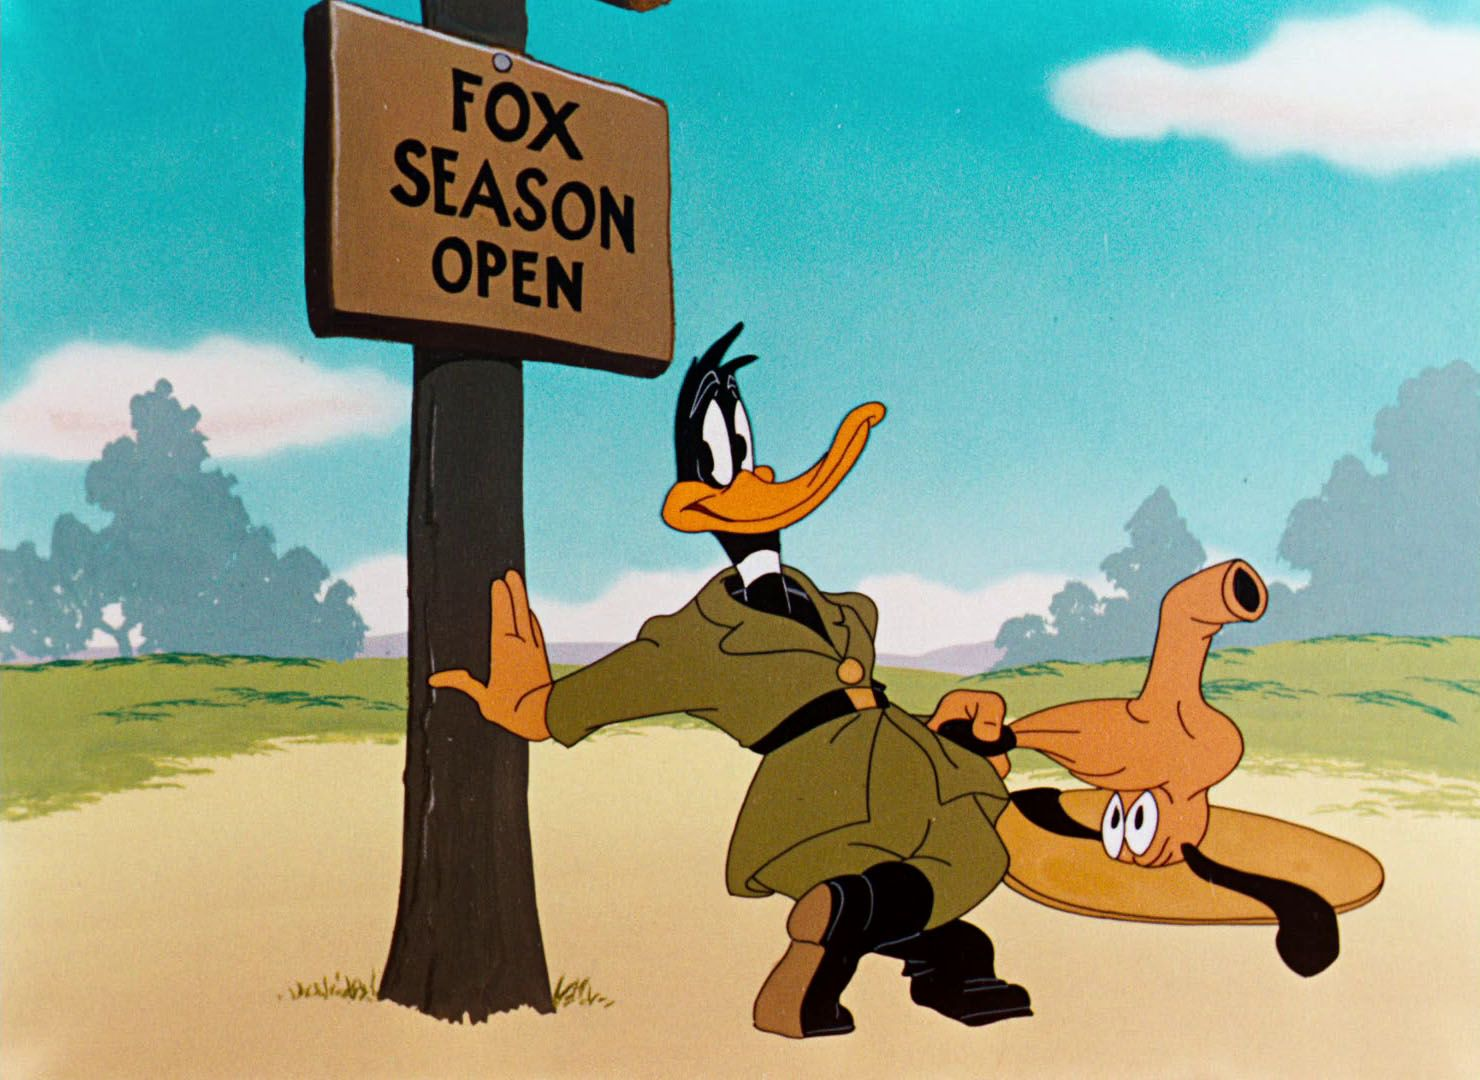 Pin by lemon lou on characters Daffy duck, Looney tunes